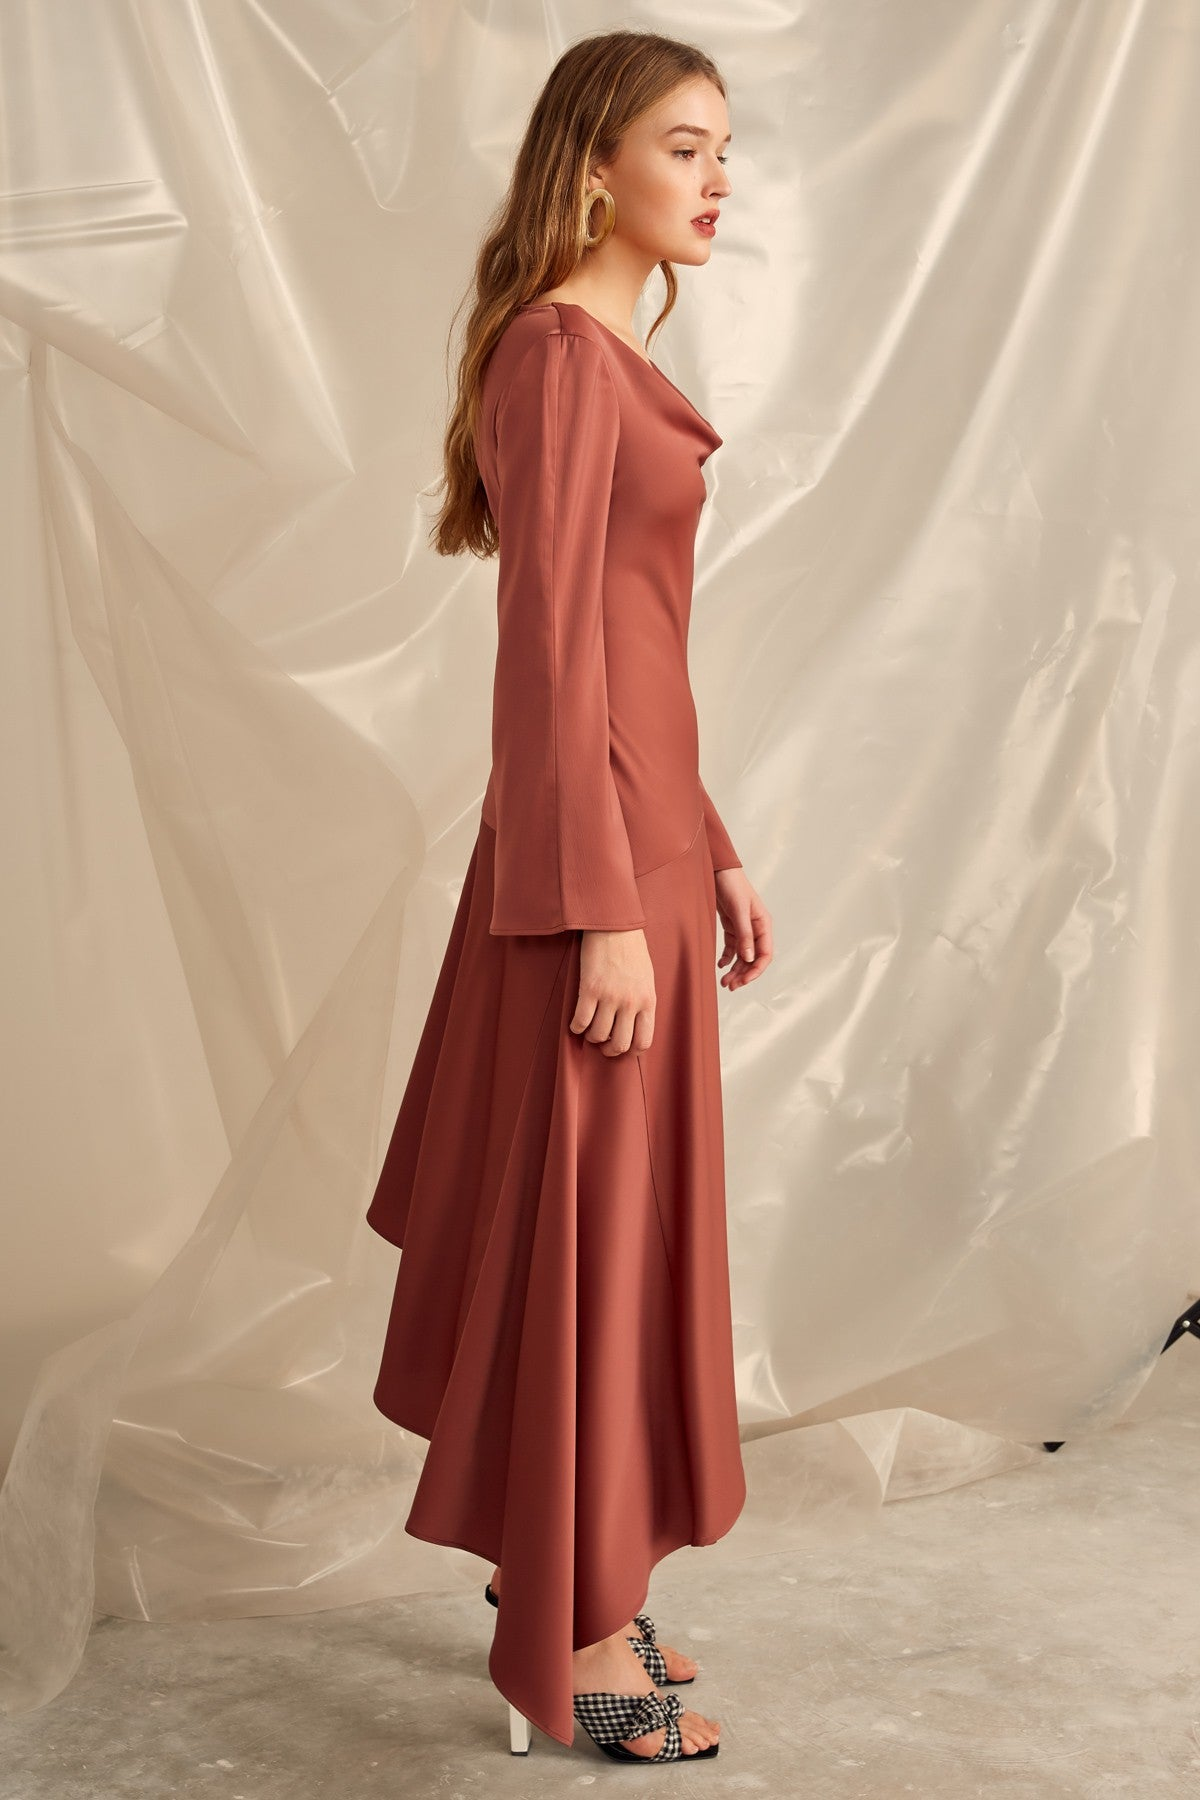 SIMPLE THINGS GOWN mahogany